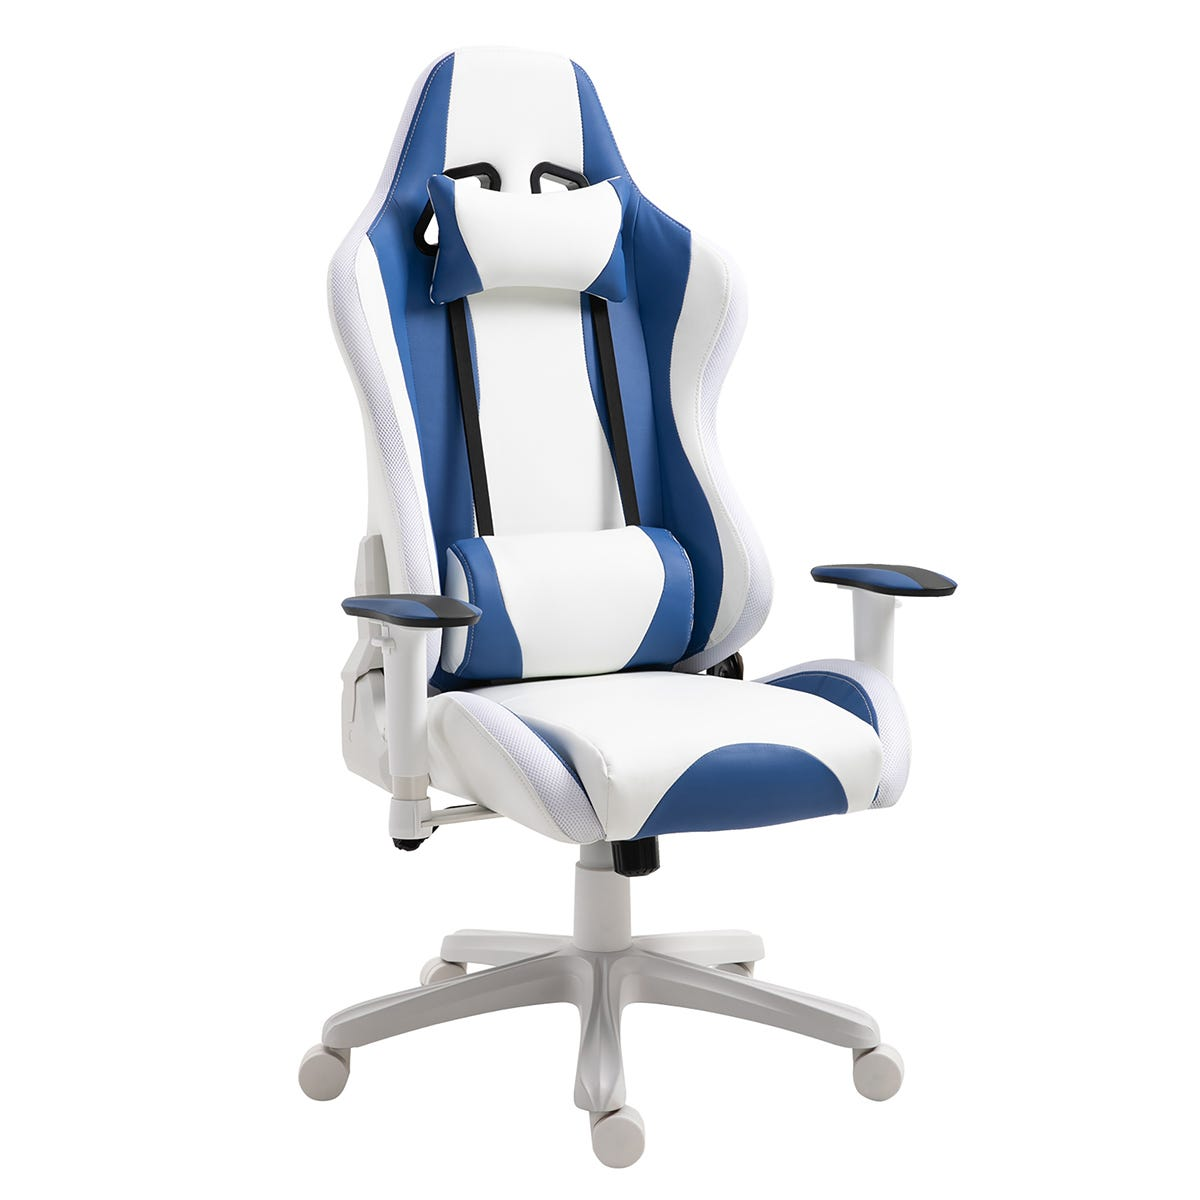 Equinox Spark PU Leather Gaming Chair with LED Lights & Adjustable Cushions - White/Blue